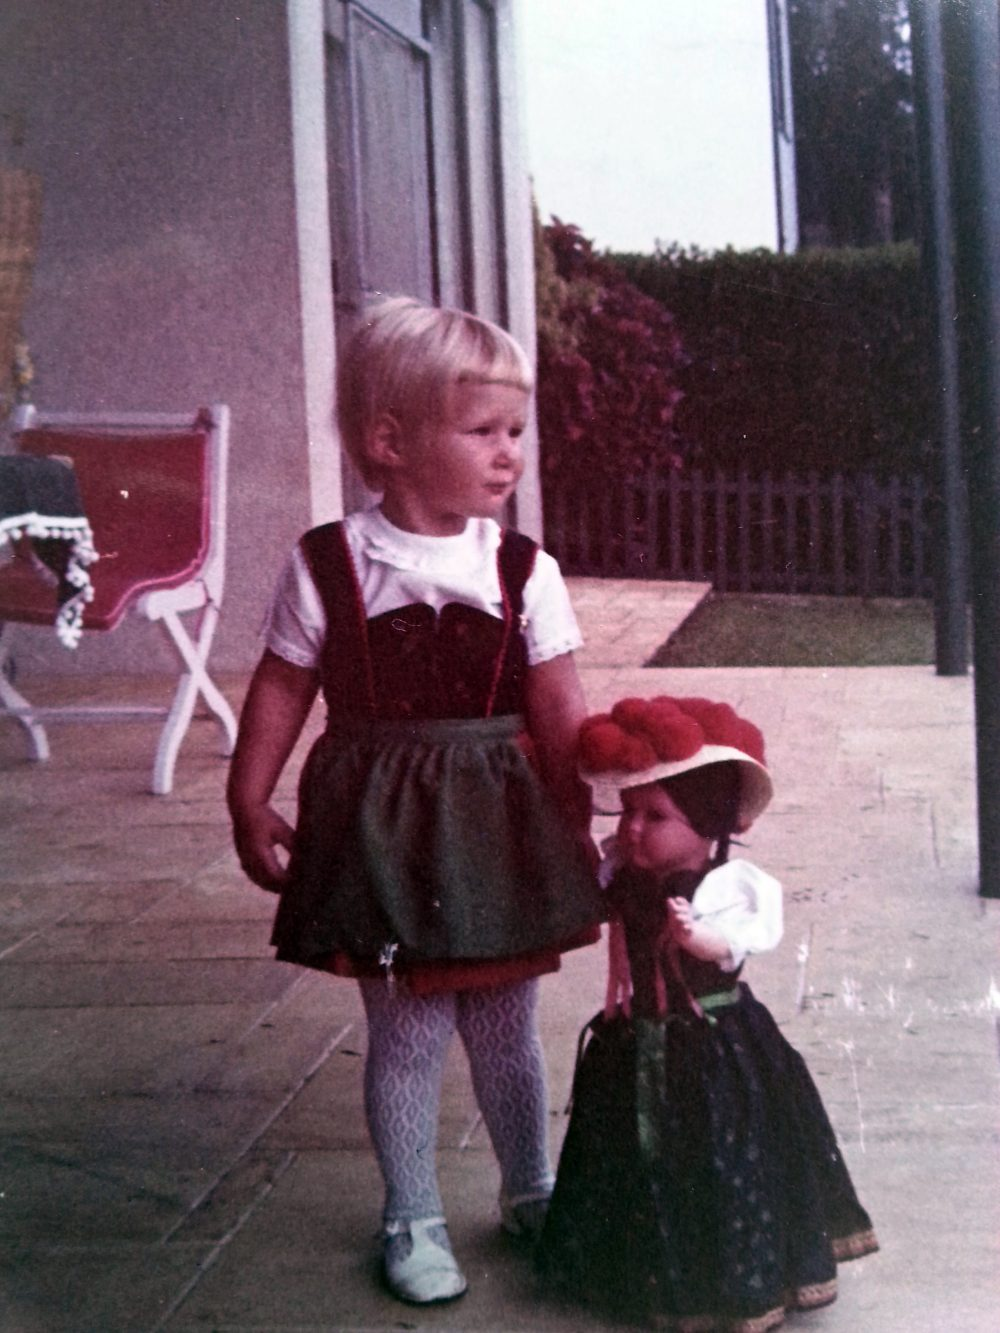 Julie, aged 3, in Brazil, dragging along a Bavarian doll and dressed in the dirndl, a traditional German dress, which she wore when her grandparents came to visit. (Courtesy of Julie Lindahl)